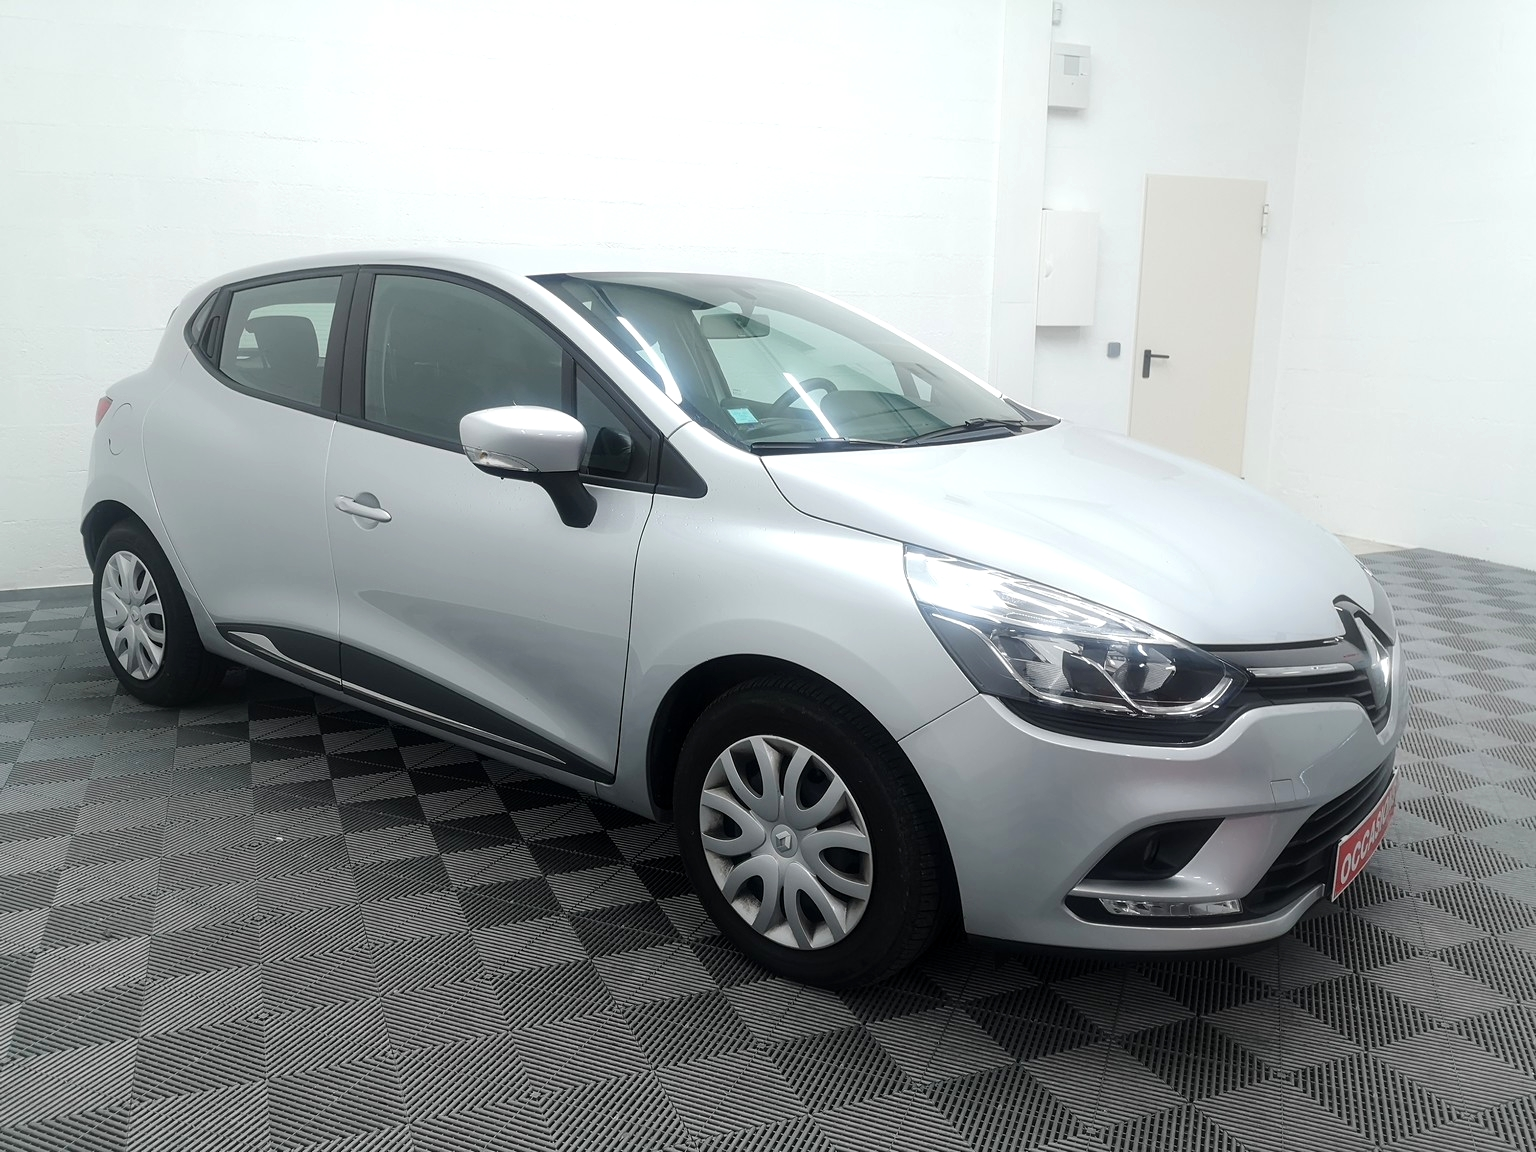 RENAULT CLIO IV 2018 à 9500 € - Photo n°2